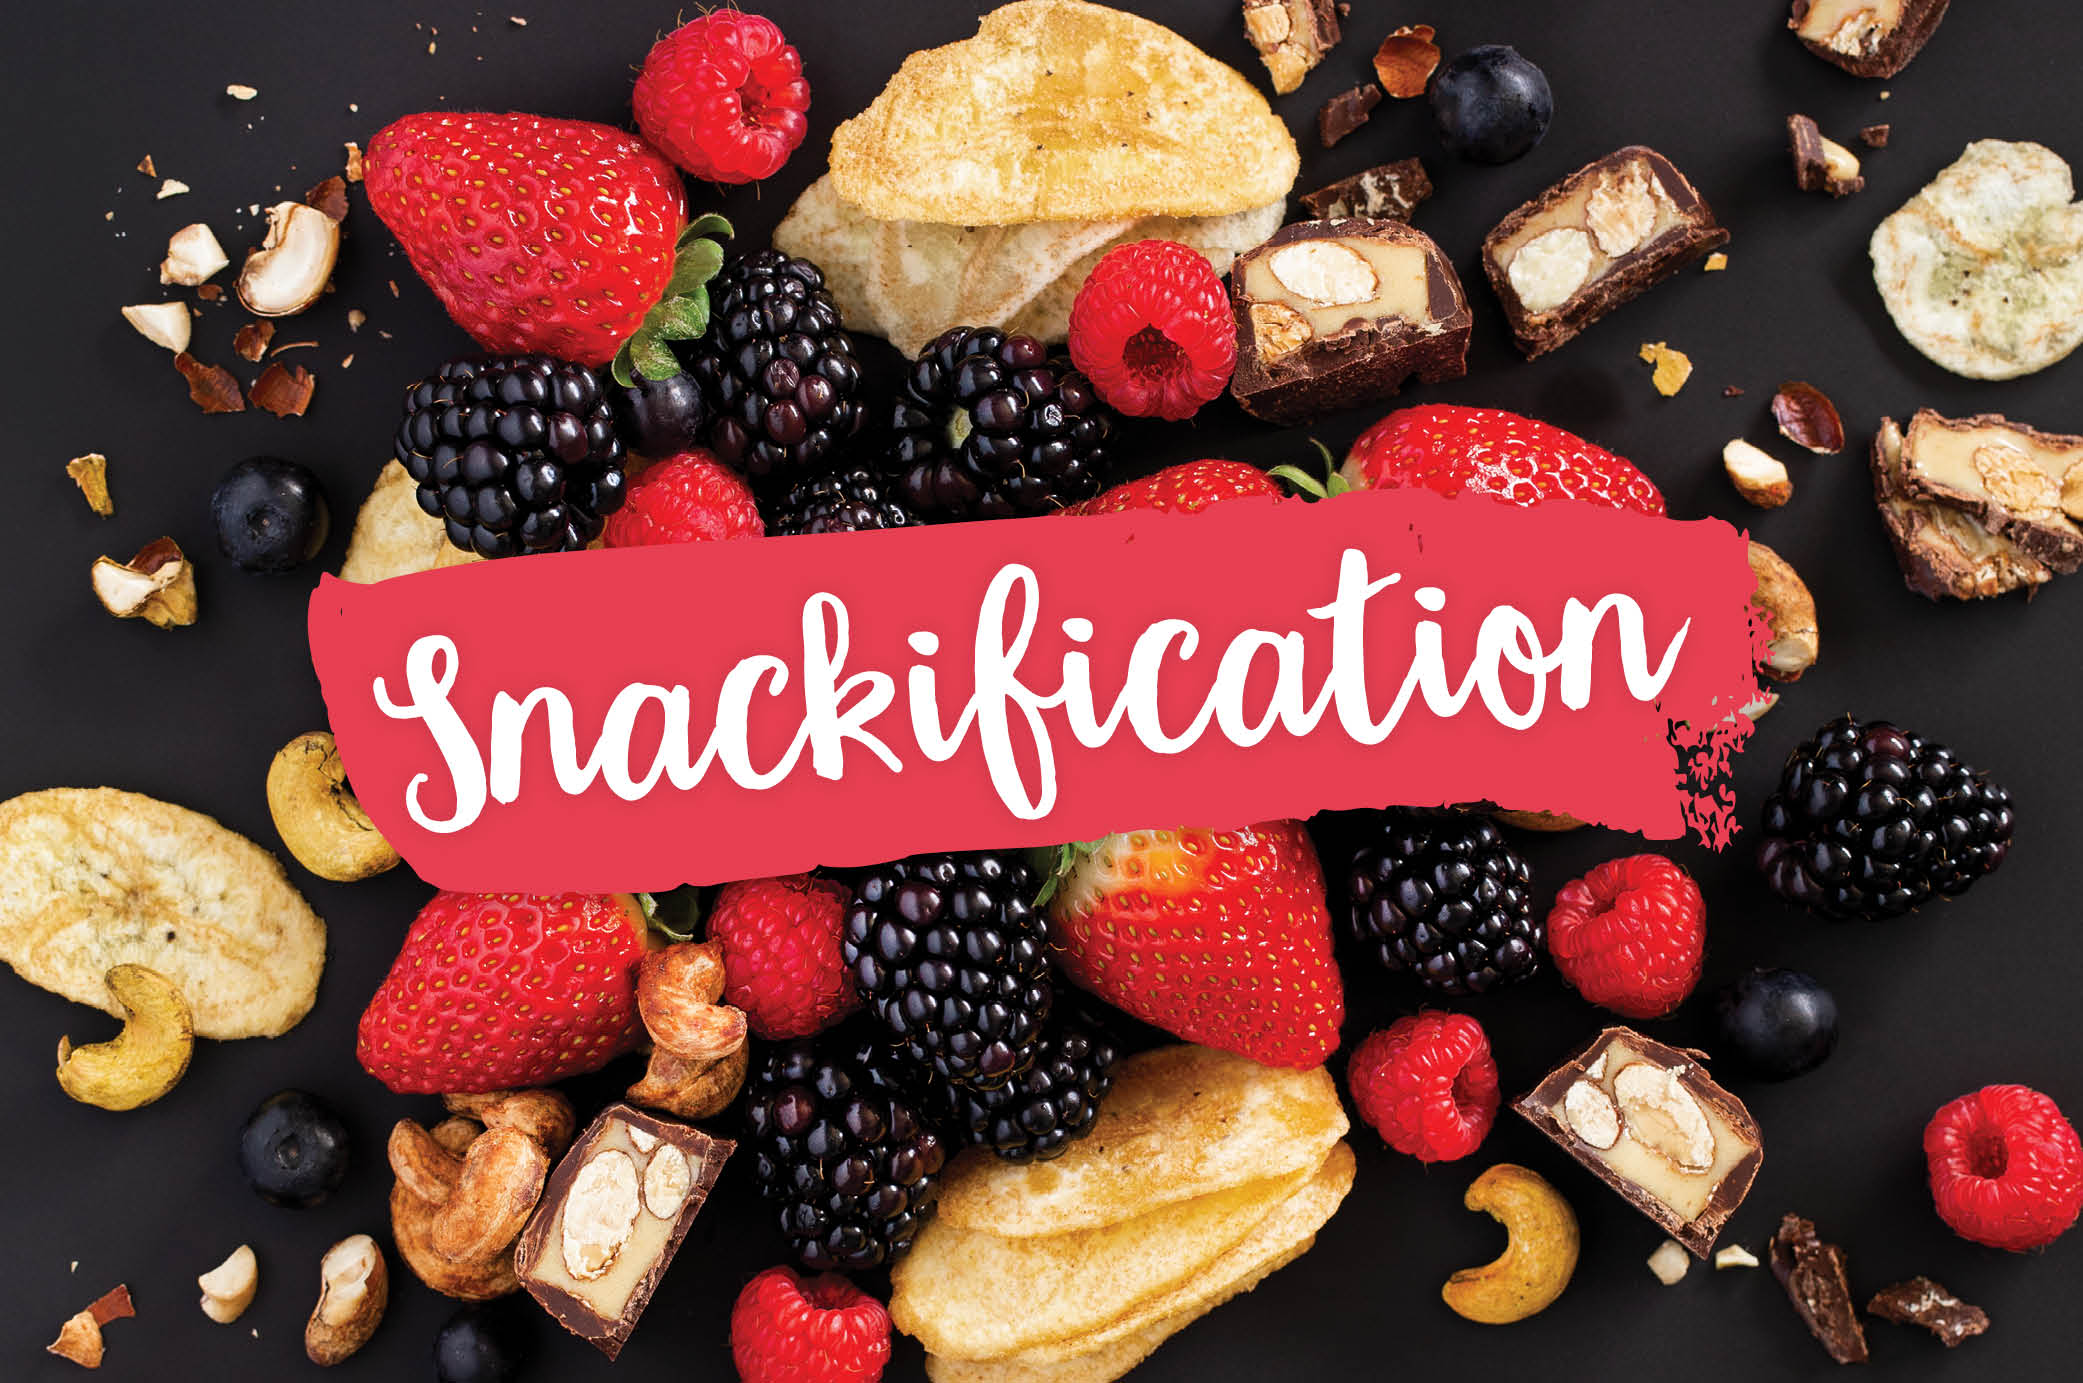 Snackification